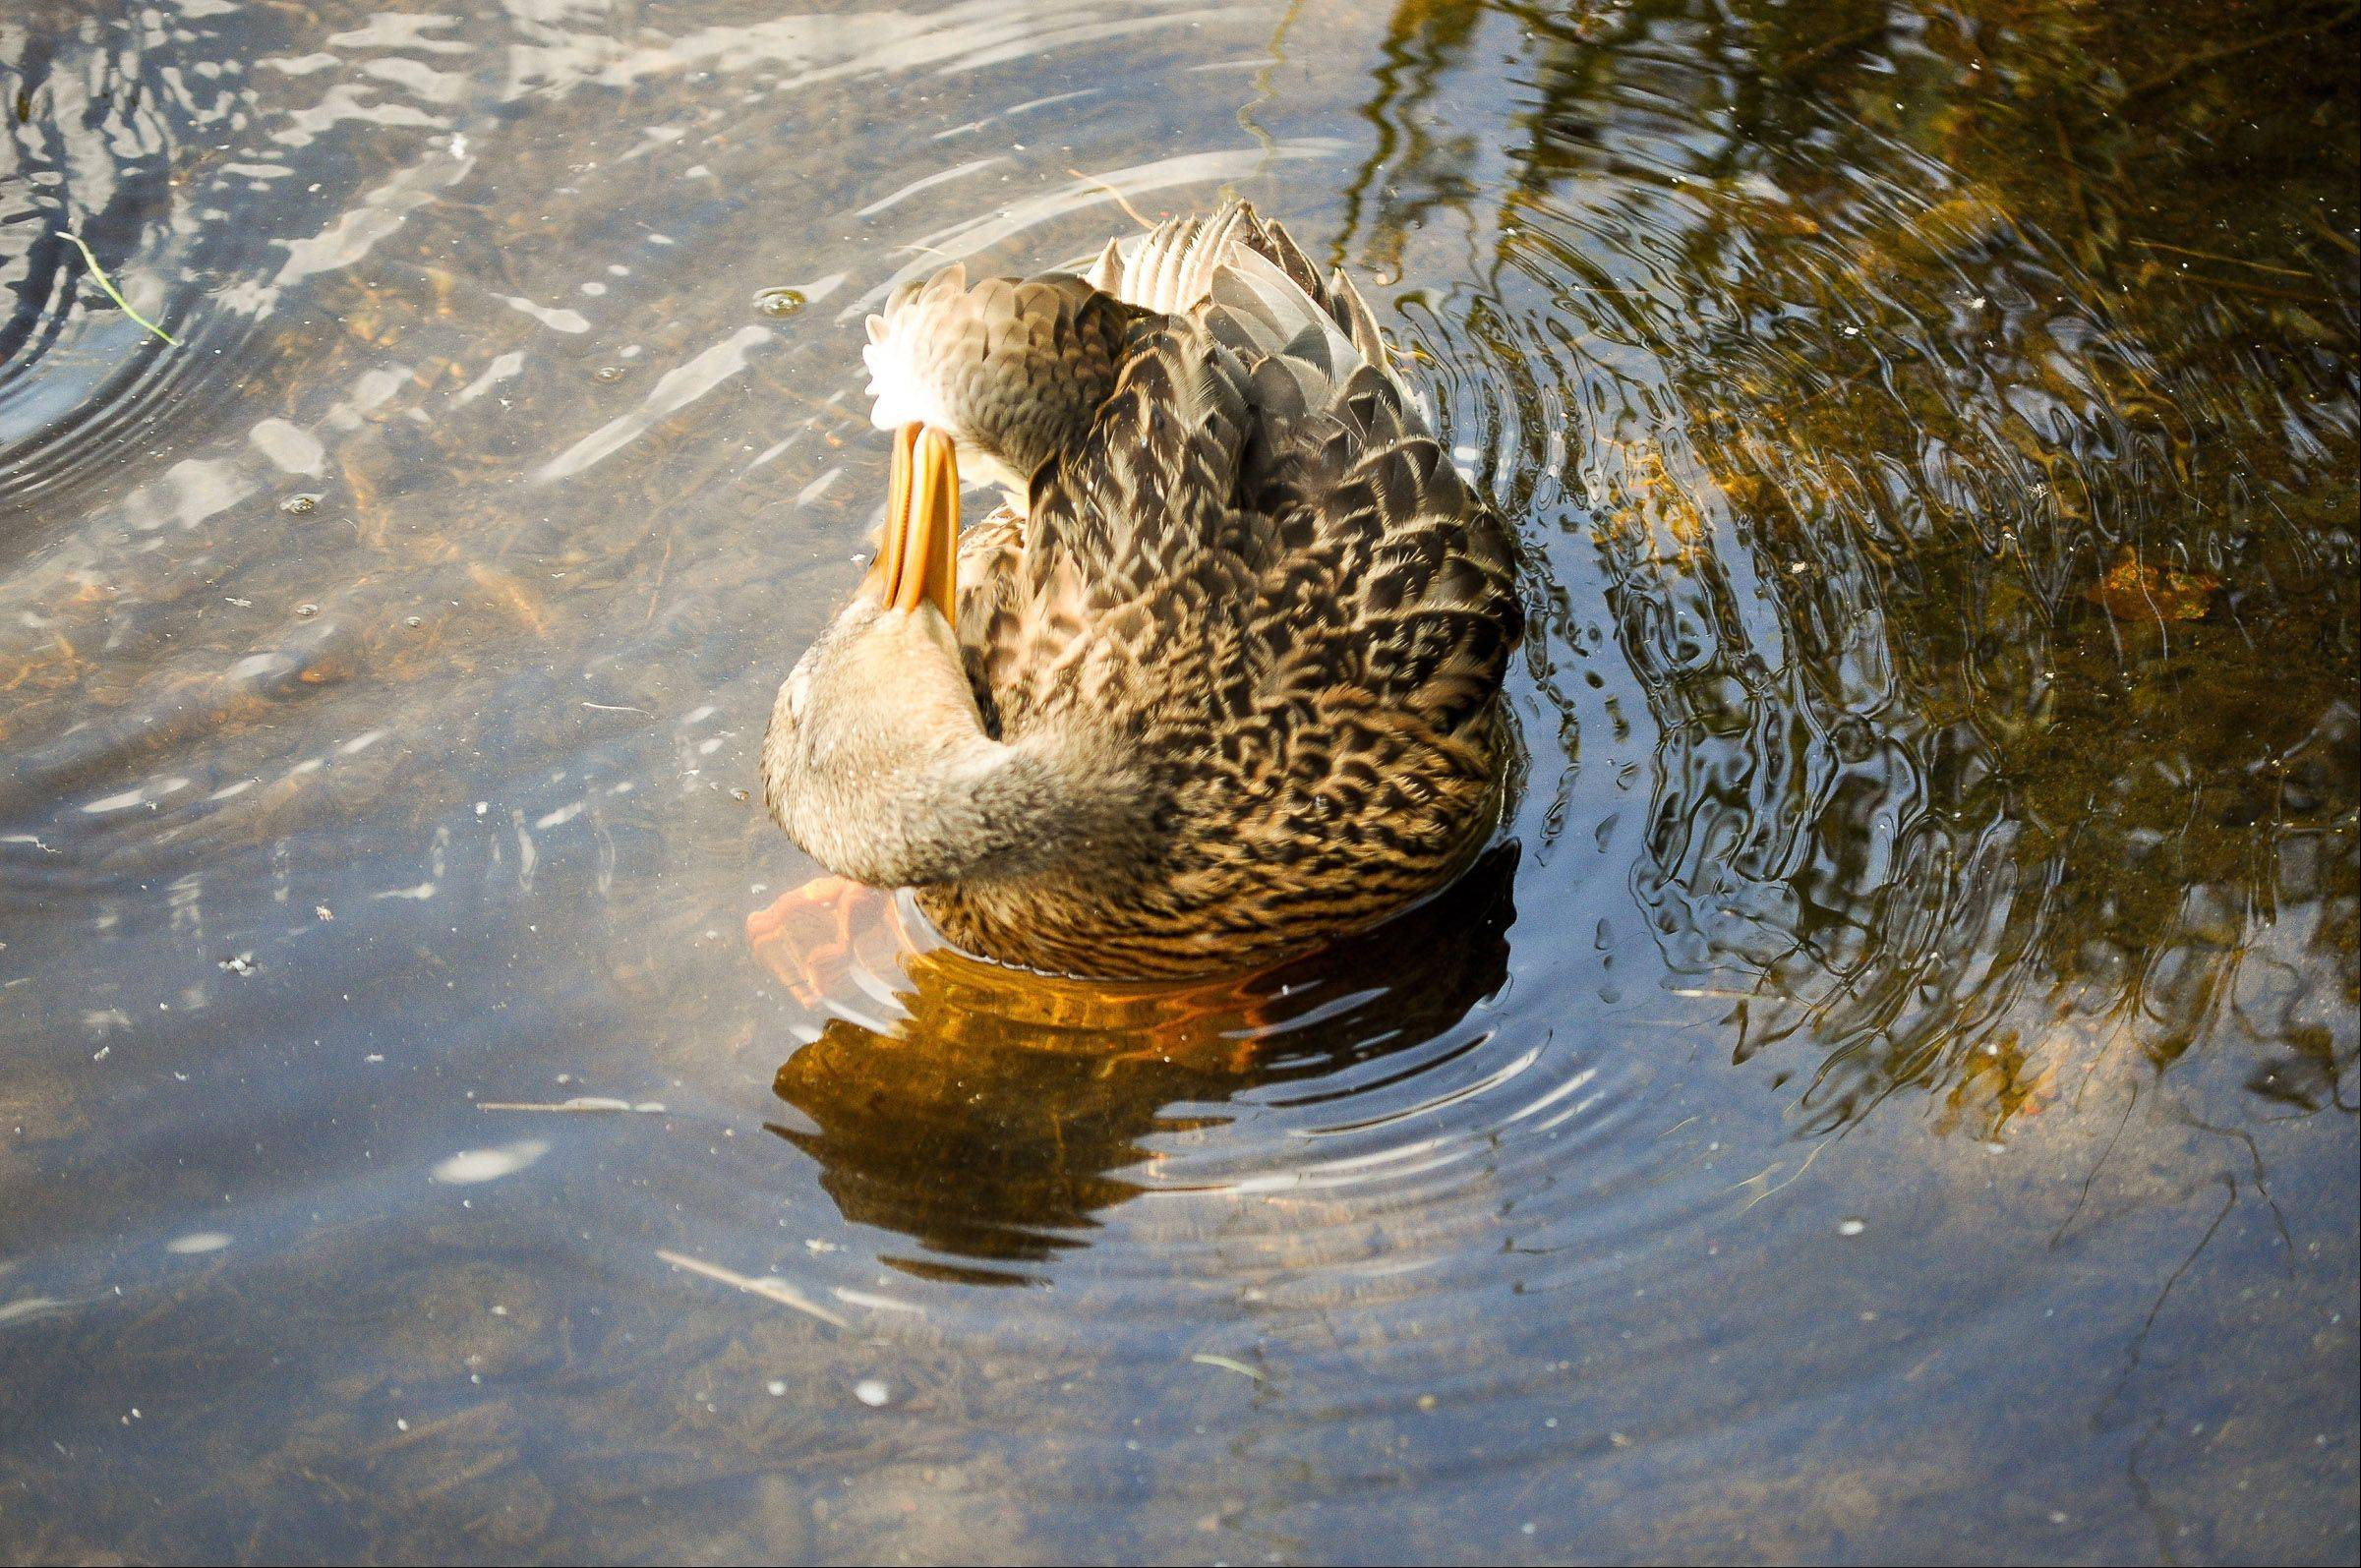 A duck cleans herself in a pond, trying to get to hard to reach places.